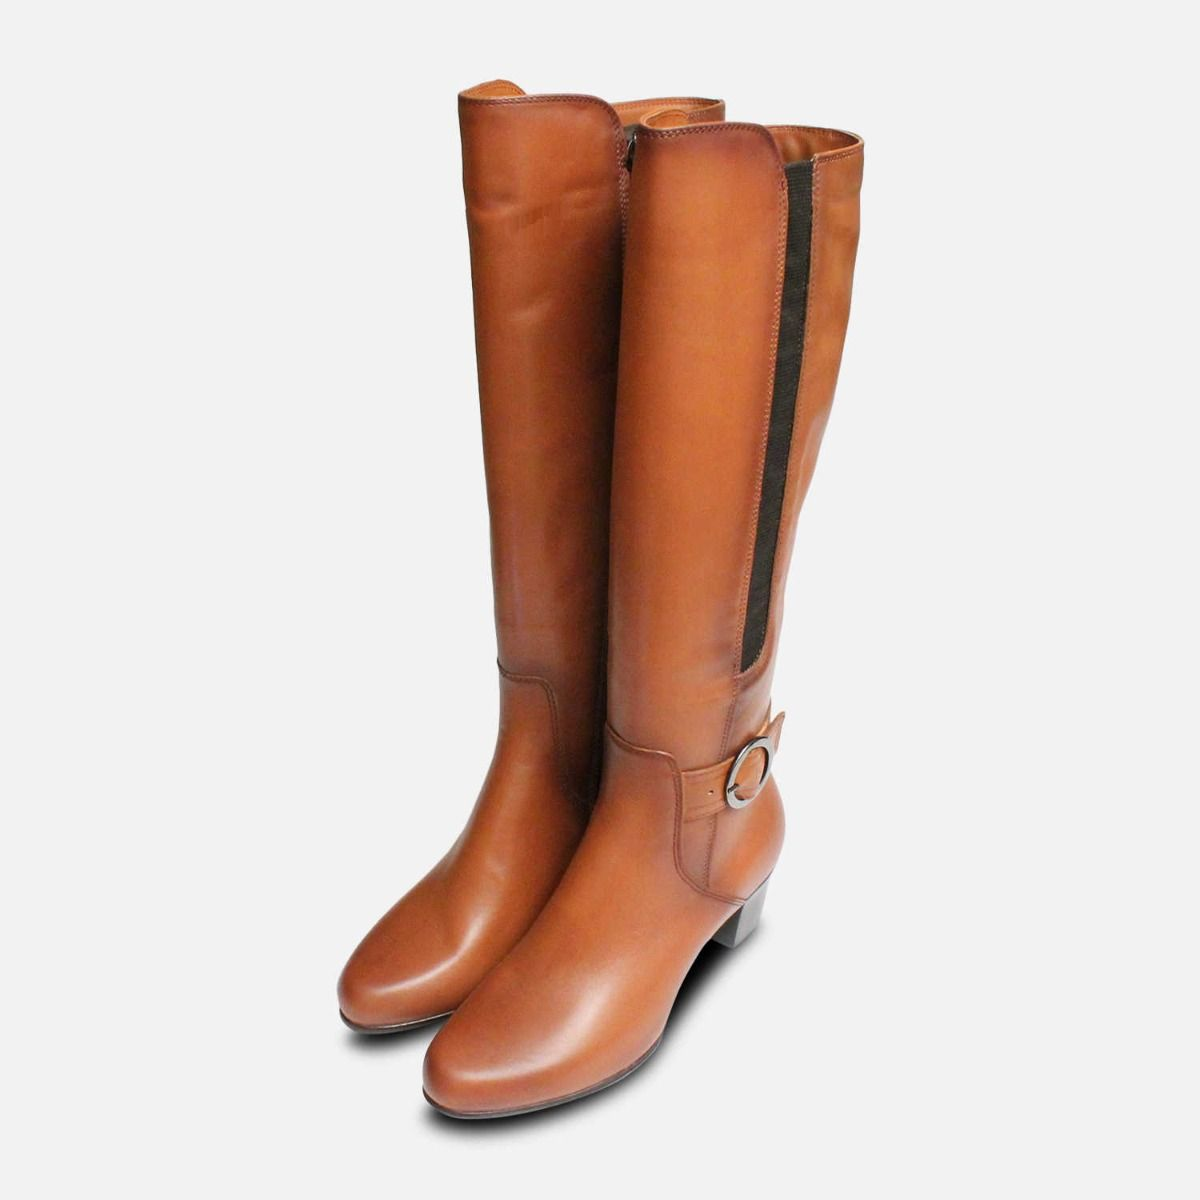 6f104f80222f Tamaris Tan Brown Leather Knee High Boots with Heel